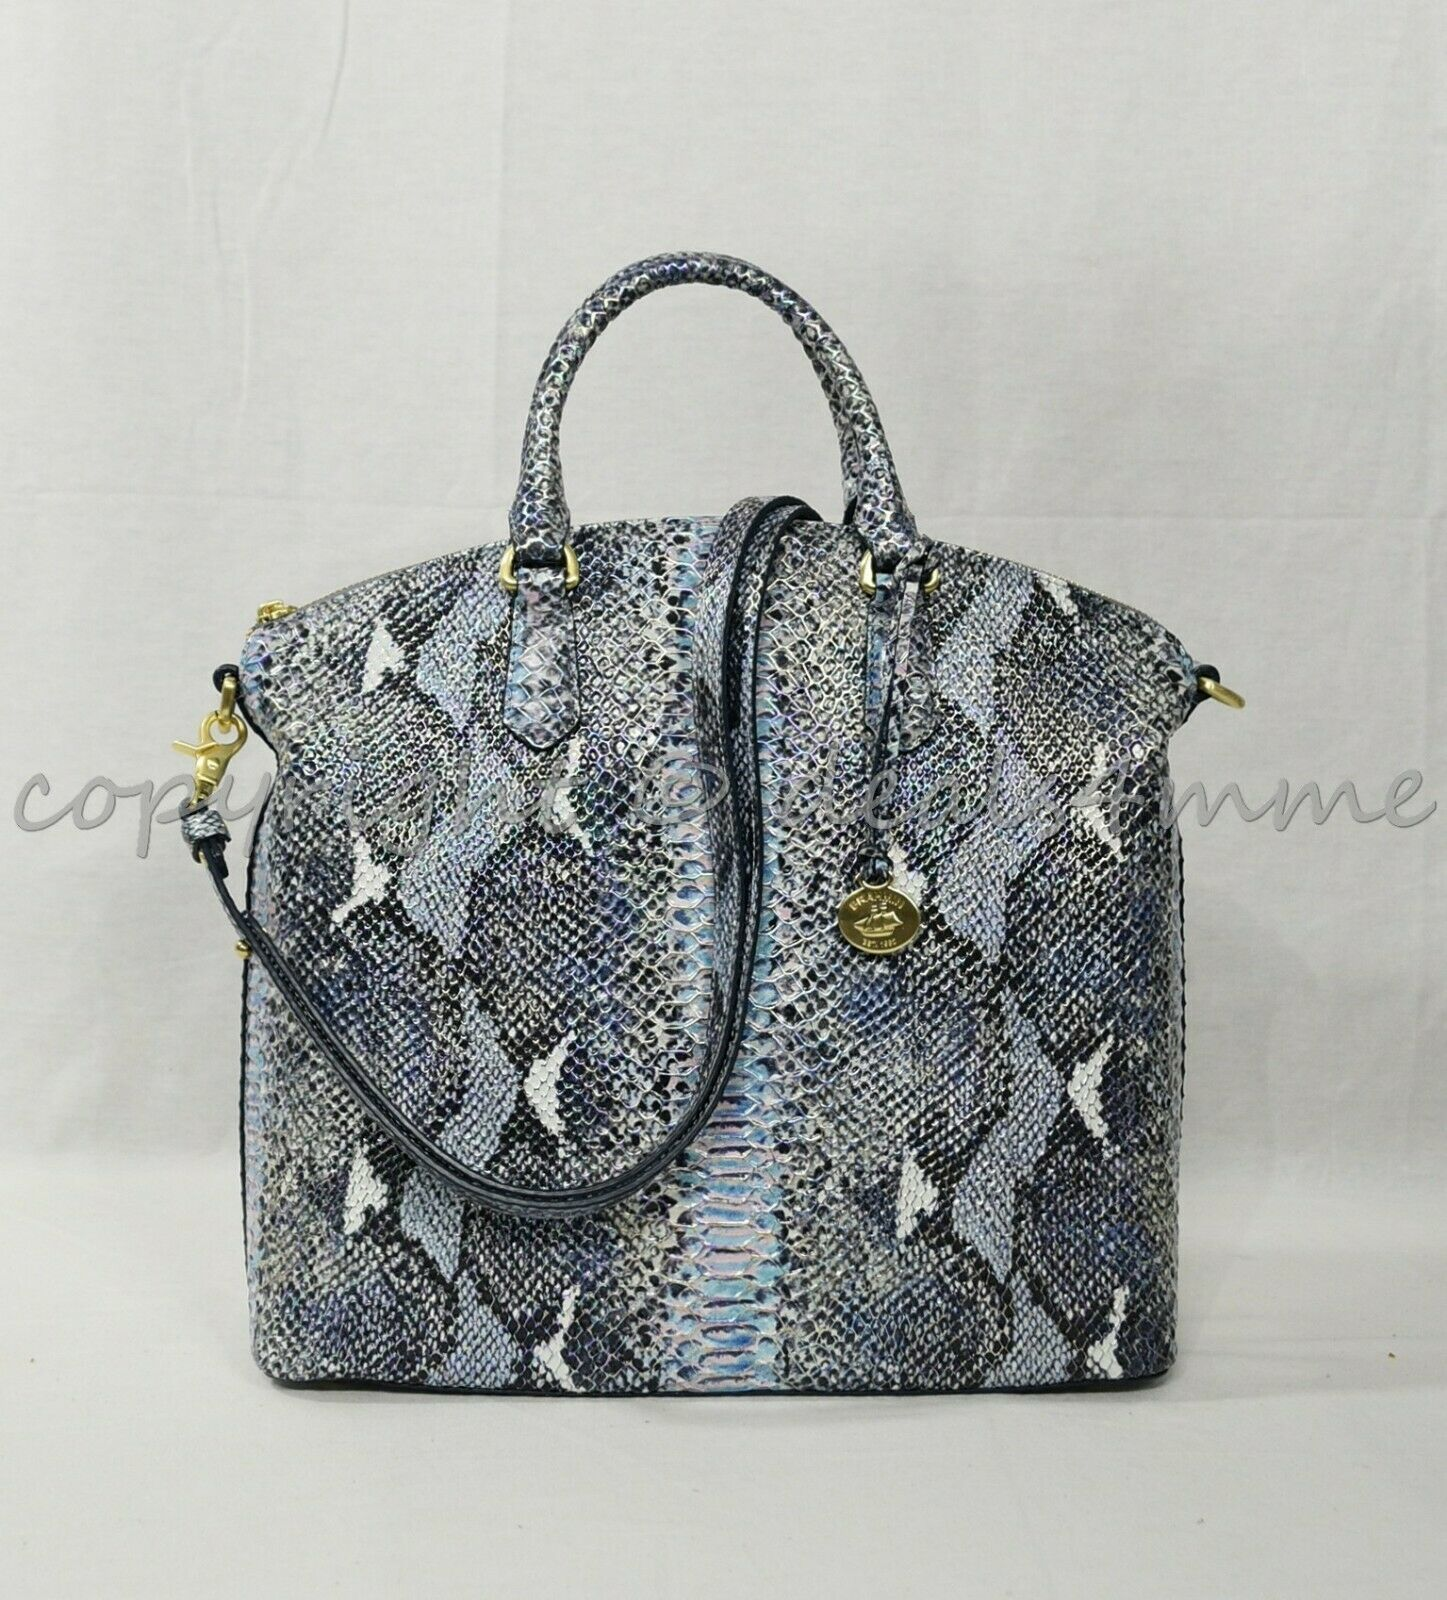 Primary image for NWT Brahmin Large Duxbury Satchel/Shoulder Bag in Marine Seville